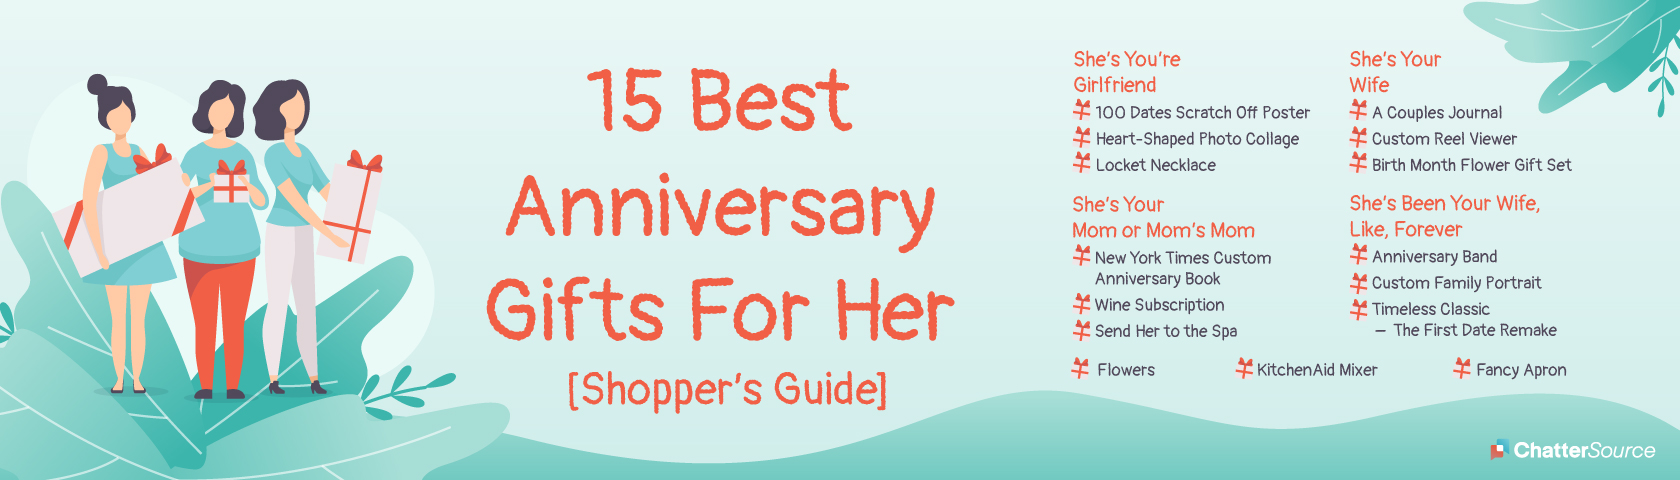 Anniversary gifts for her infographic